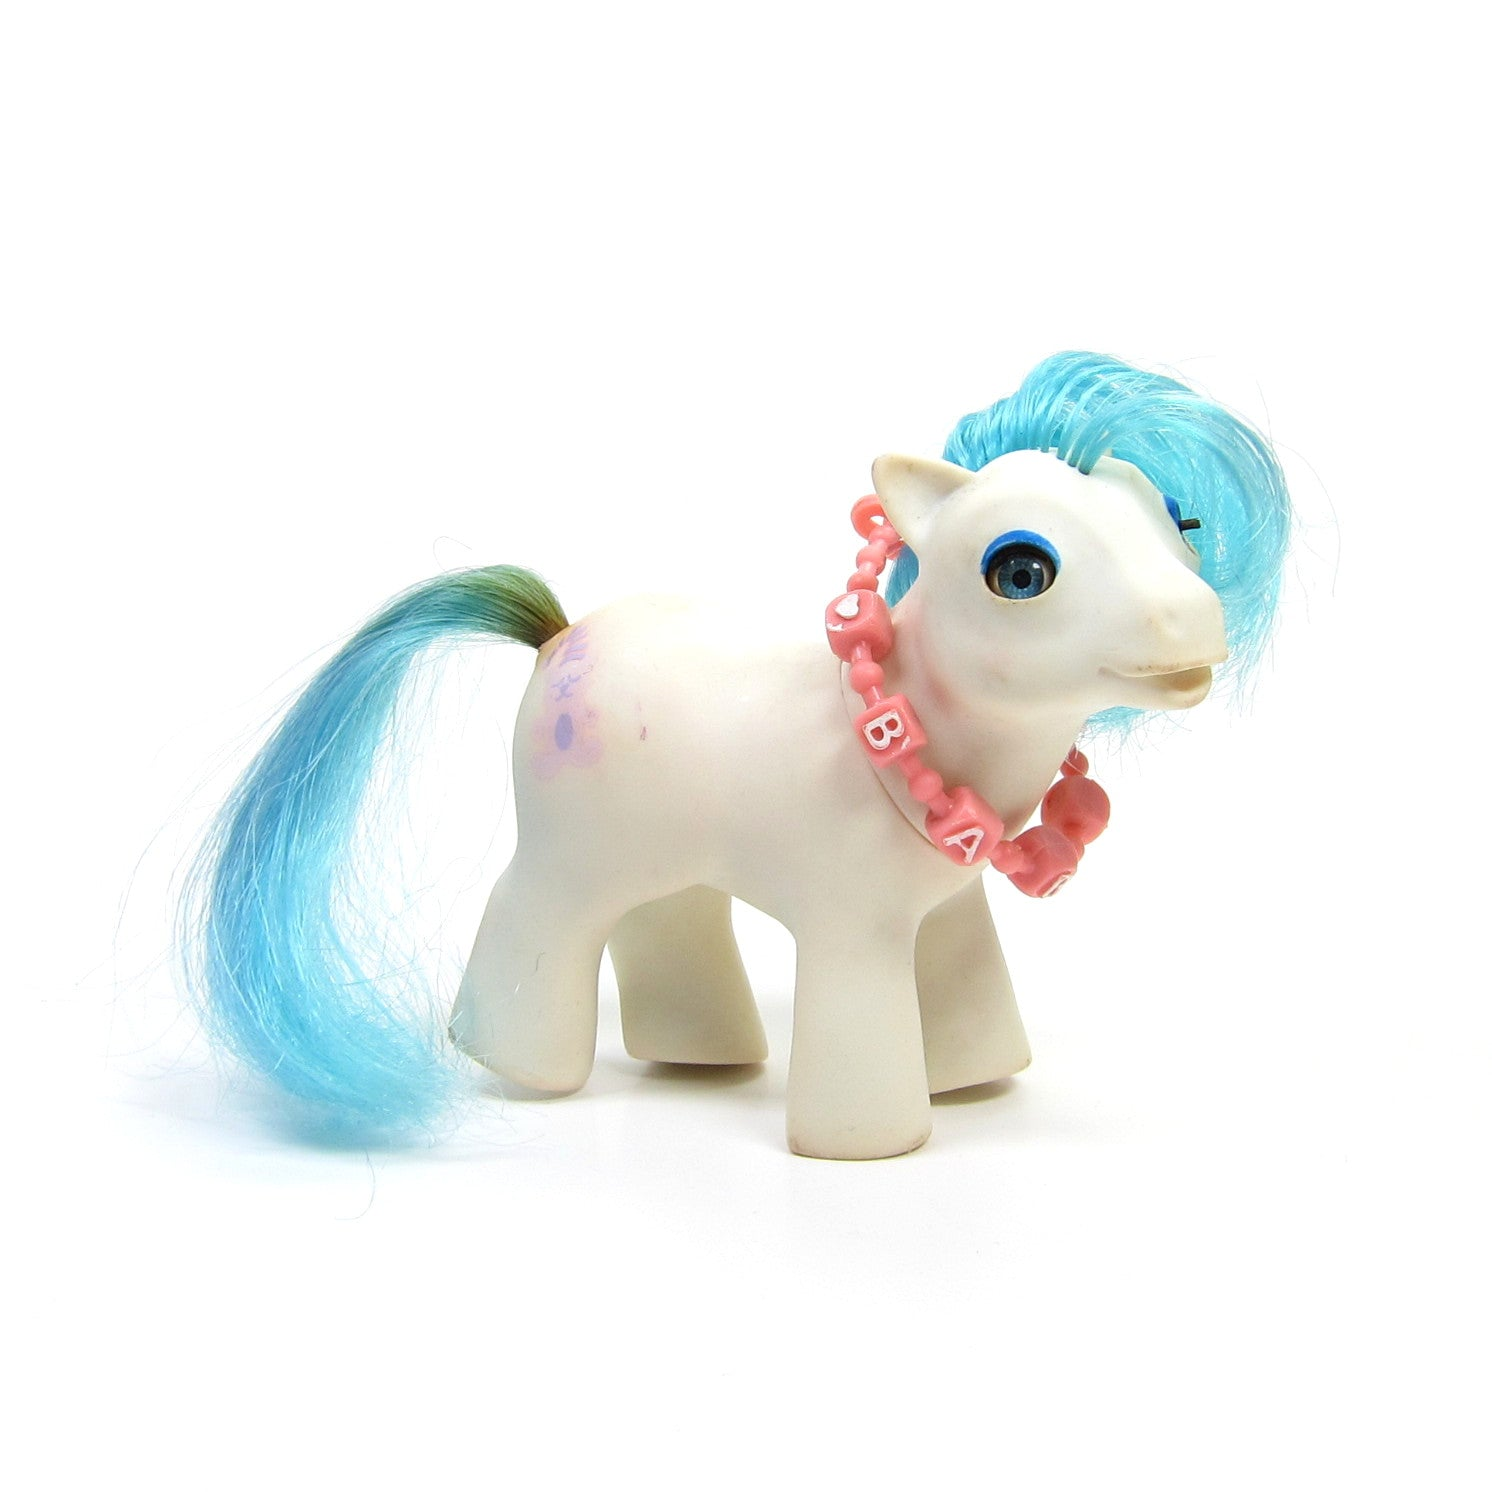 Baby Sleepy Pie playset pony from Pony Purse